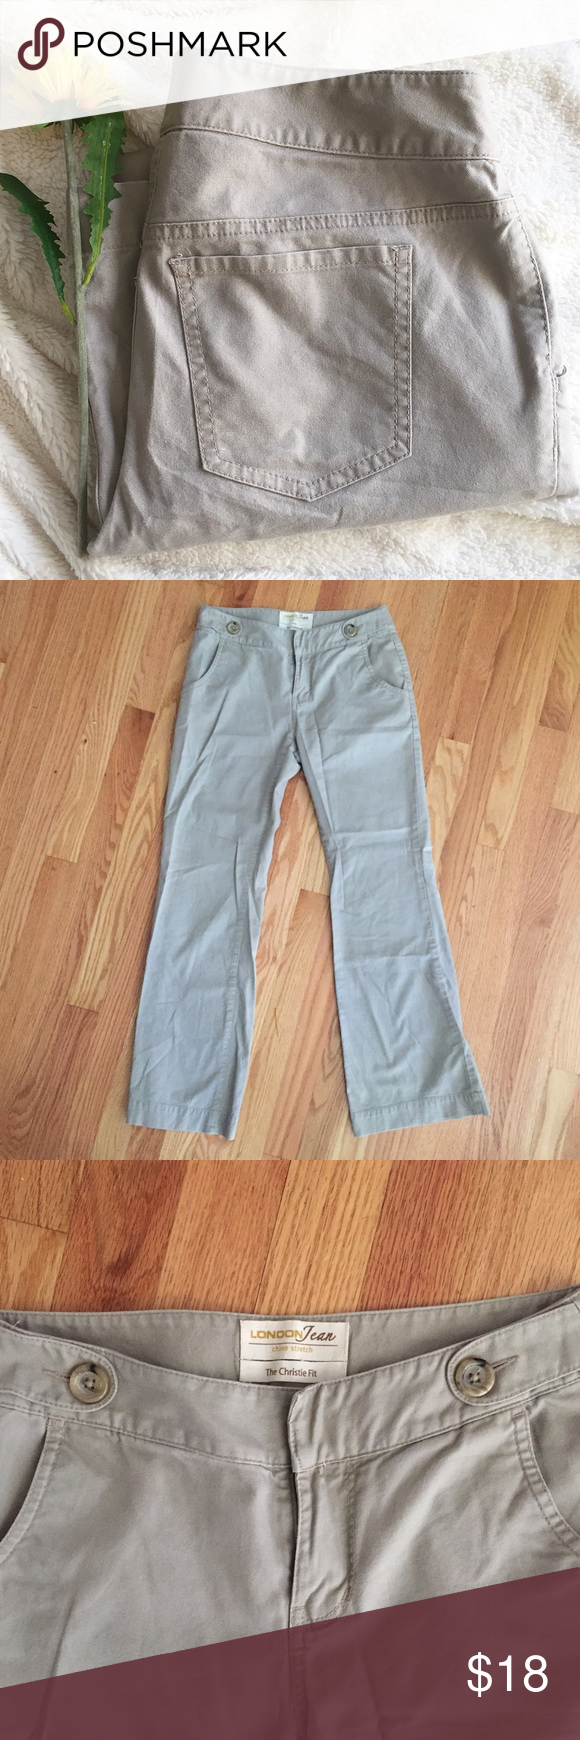 """VS Christie Fit Stretch Chinos Worn a couple of times, excellent used condition. No rips/stains/holes. From Victoria's Secret before they stopped selling casual clothing. London Jean brand. Size 2 short. Khaki color. 8"""" rise. 29.5"""" inseam. Waist is 14"""" laying flat. 97% cotton / 3% spandex. Reasonable offers are welcome! ✨ Victoria's Secret Pants Boot Cut & Flare"""